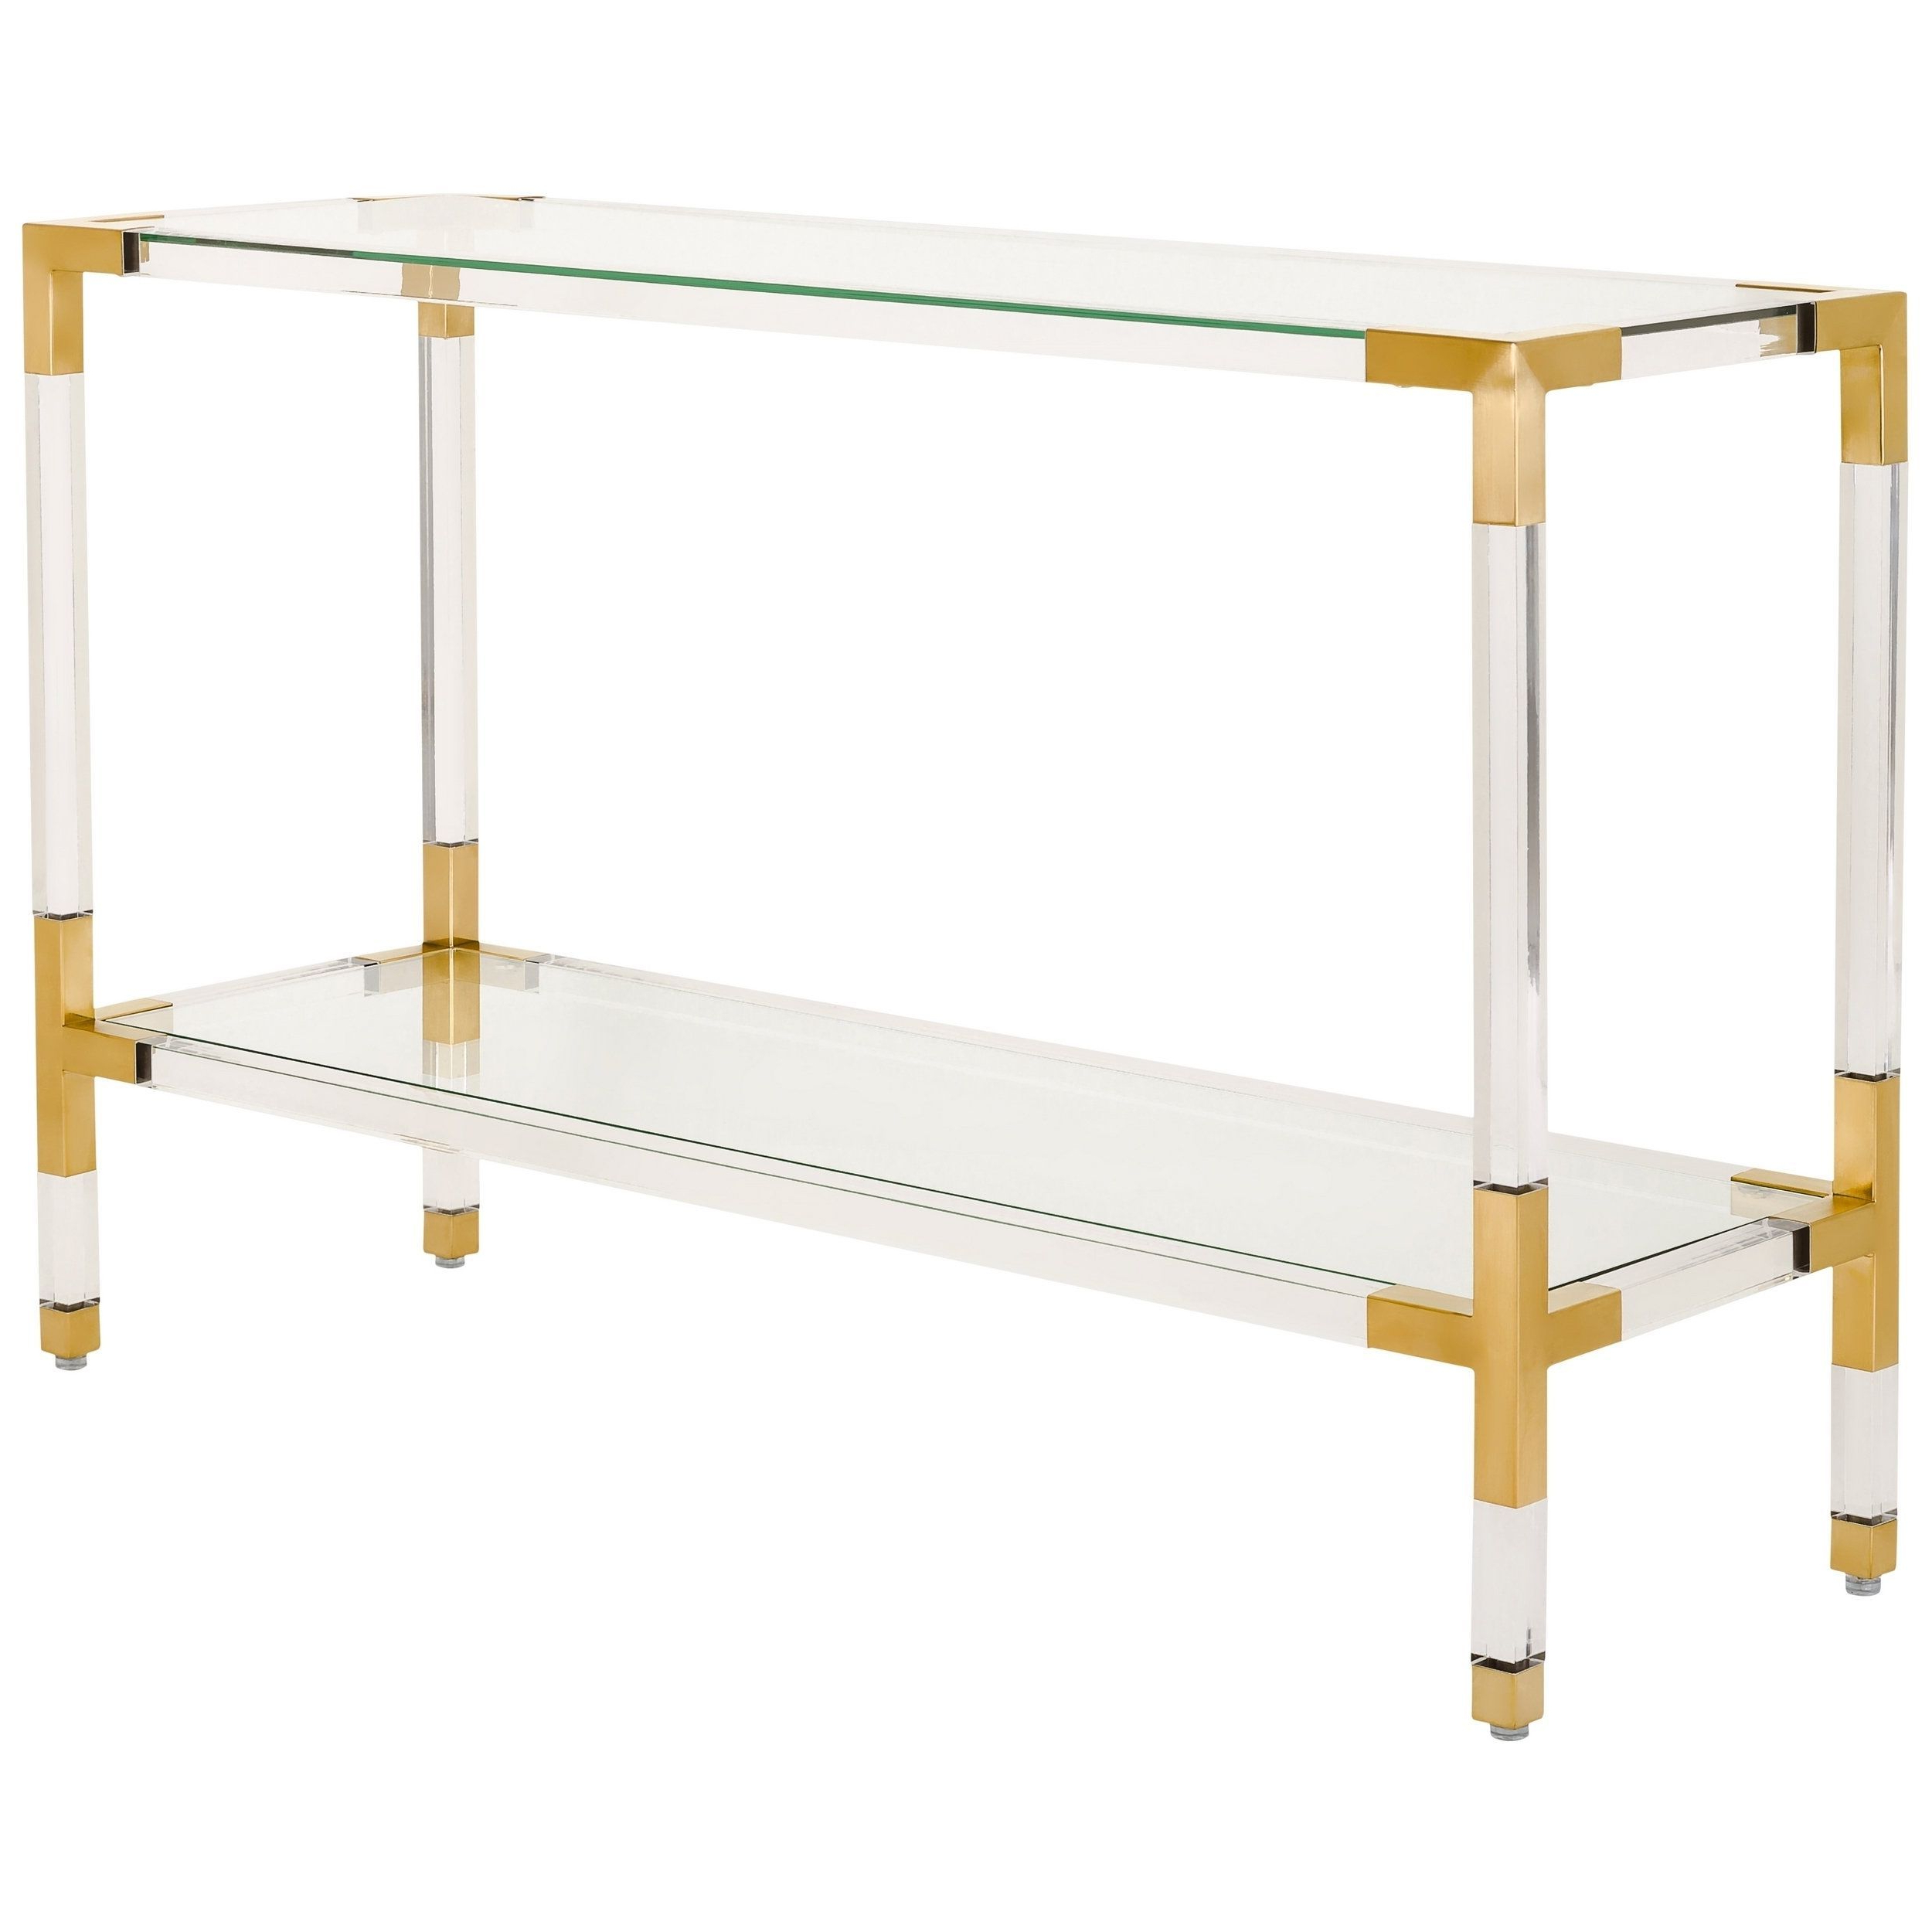 Safavieh Couture Arverne Acrylic Console , Clear | Pinterest In Parsons Clear Glass Top & Brass Base 48X16 Console Tables (View 14 of 20)